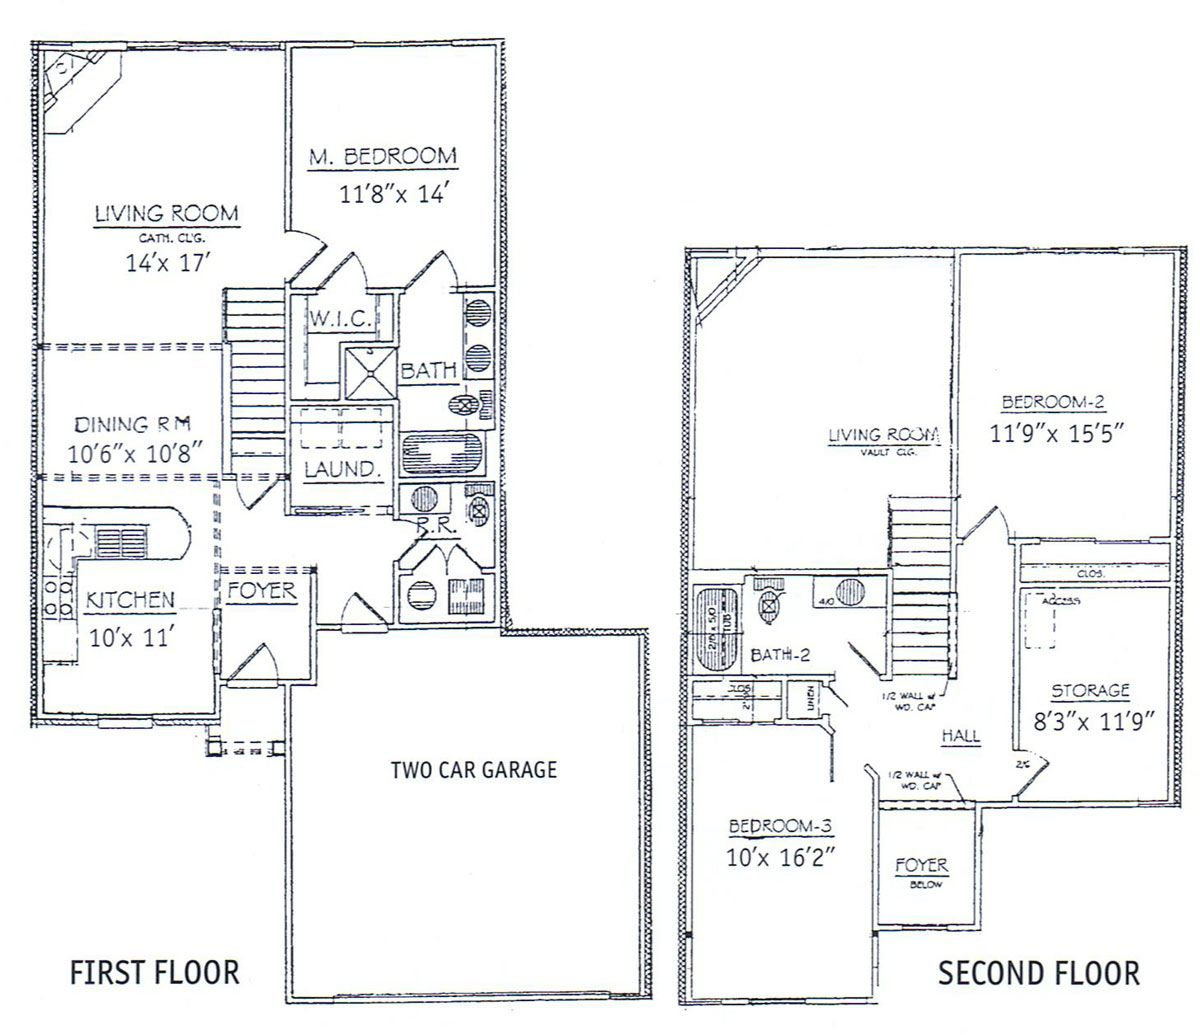 3 bedrooms floor plans 2 story bdrm basement the two three bedroom two story townhome Two story house plans